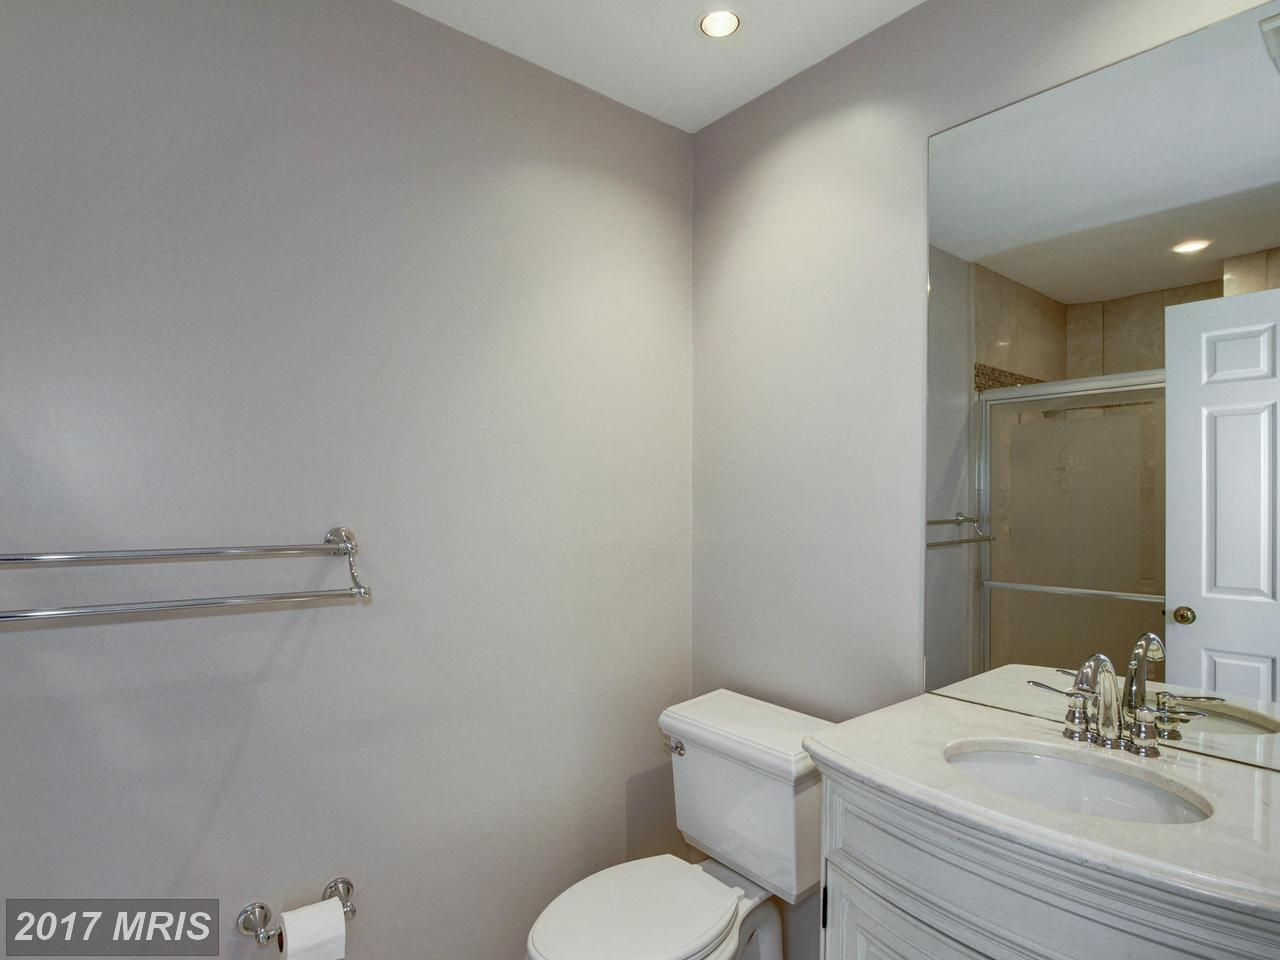 Additional photo for property listing at Detached, International - WASHINGTON, DC 4662 CHARLESTON TER NW Washington, Округ Колумбия,20007 Соединенные Штаты